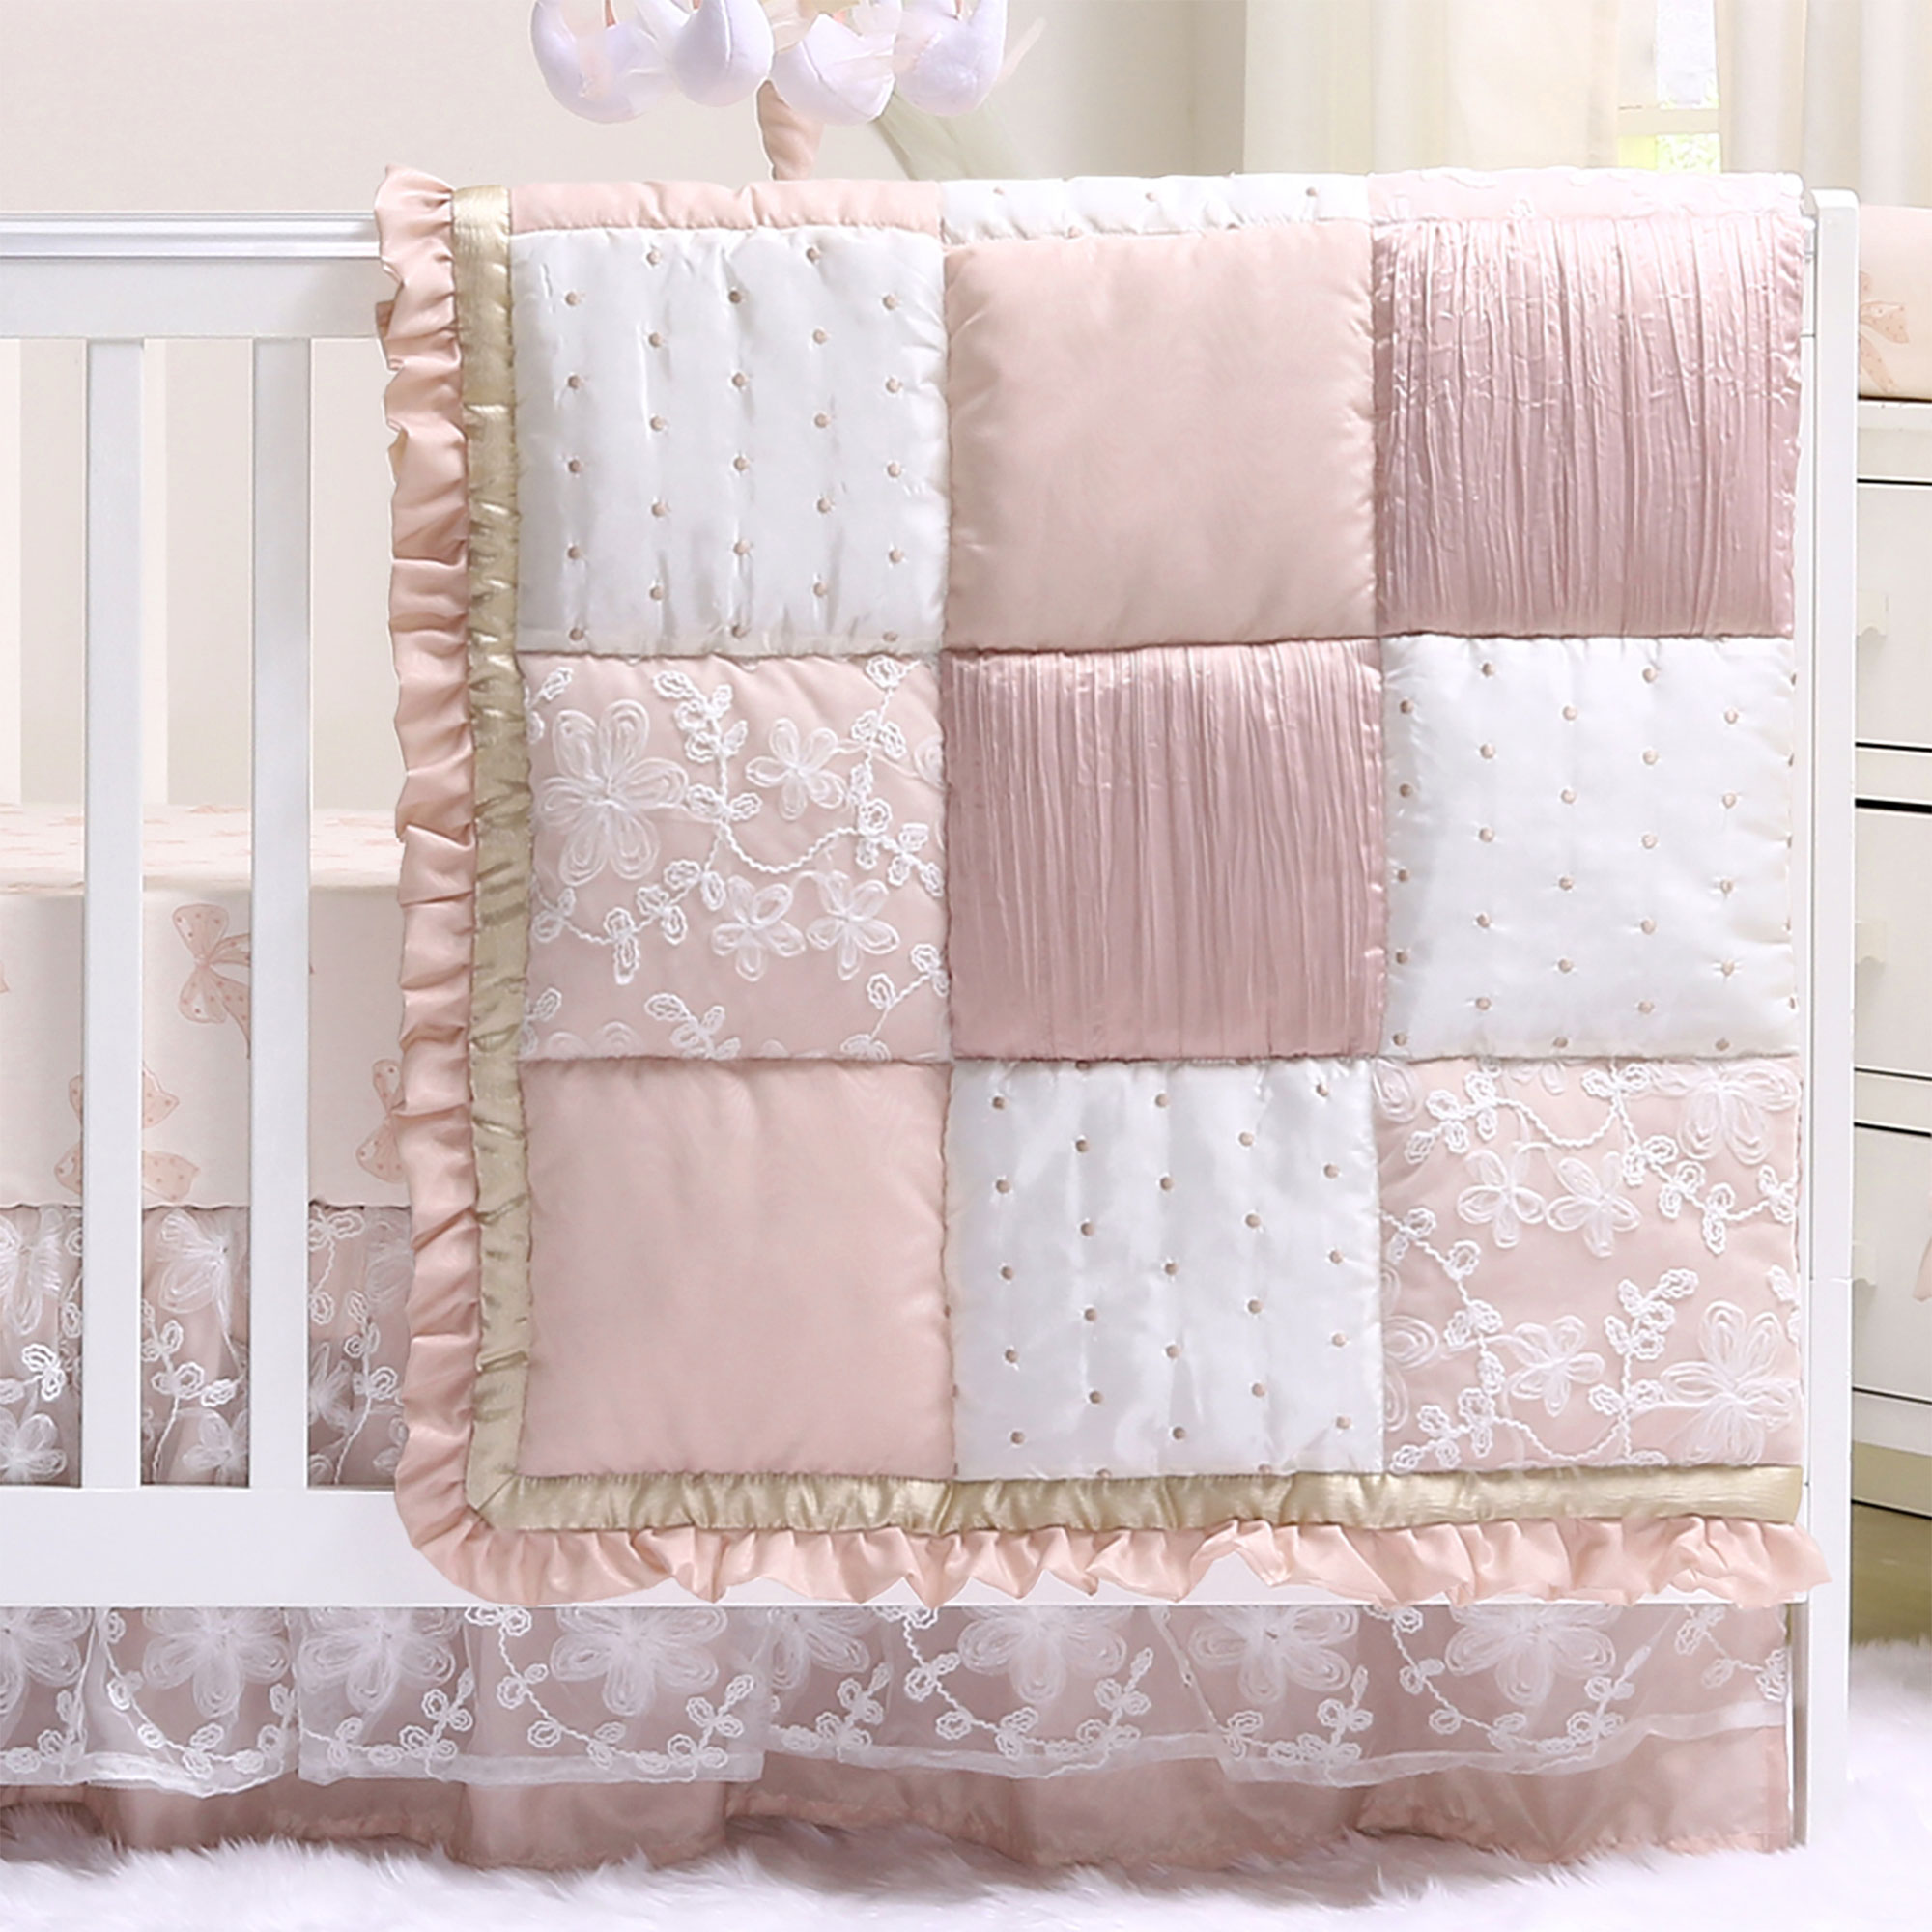 Baby Girl Crib Bedding - Dusty Pink Patchwork Design - Grace 4 Piece Set by The Peanut Shell